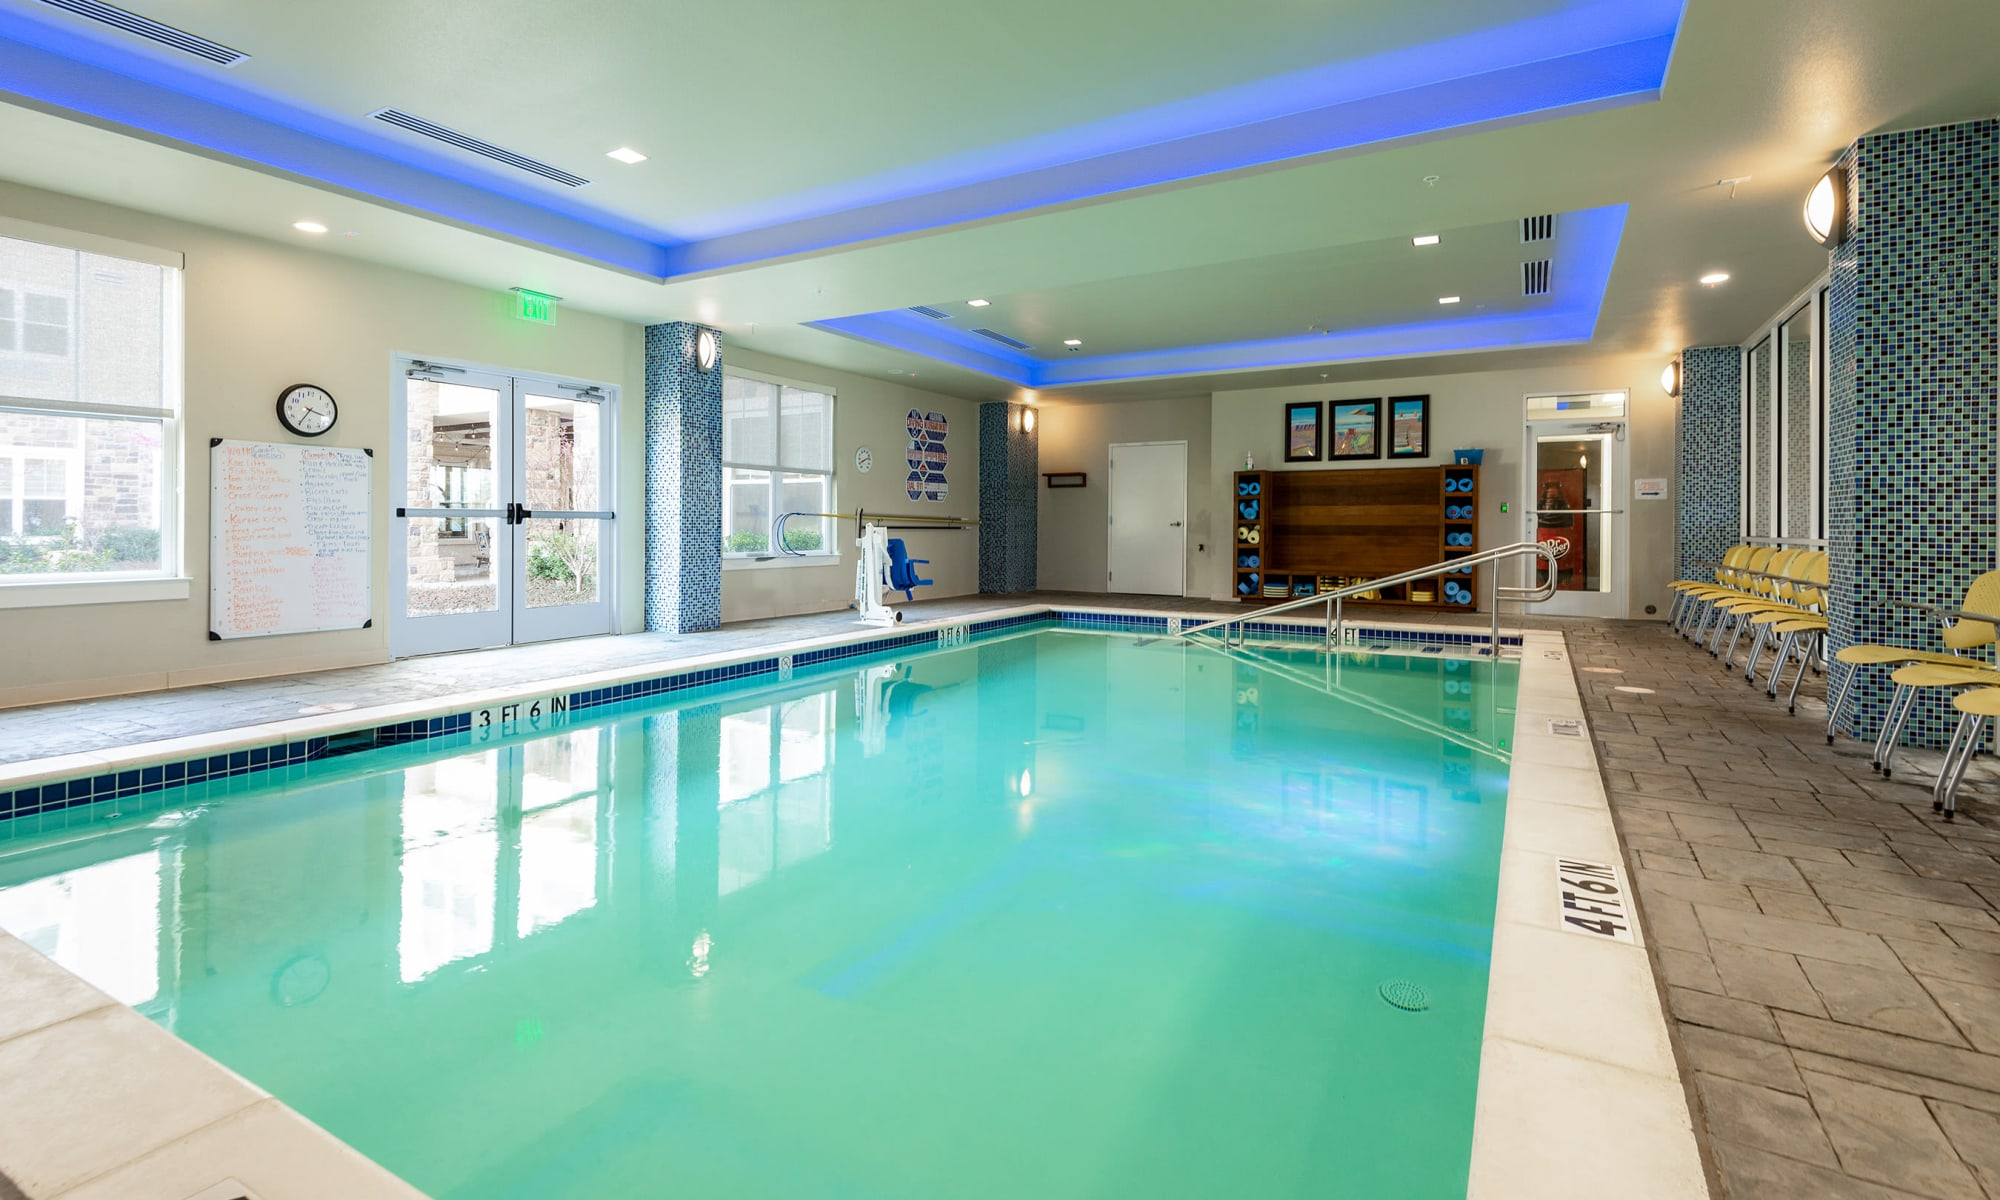 Pool at MacArthur Hills in Irving, Texas